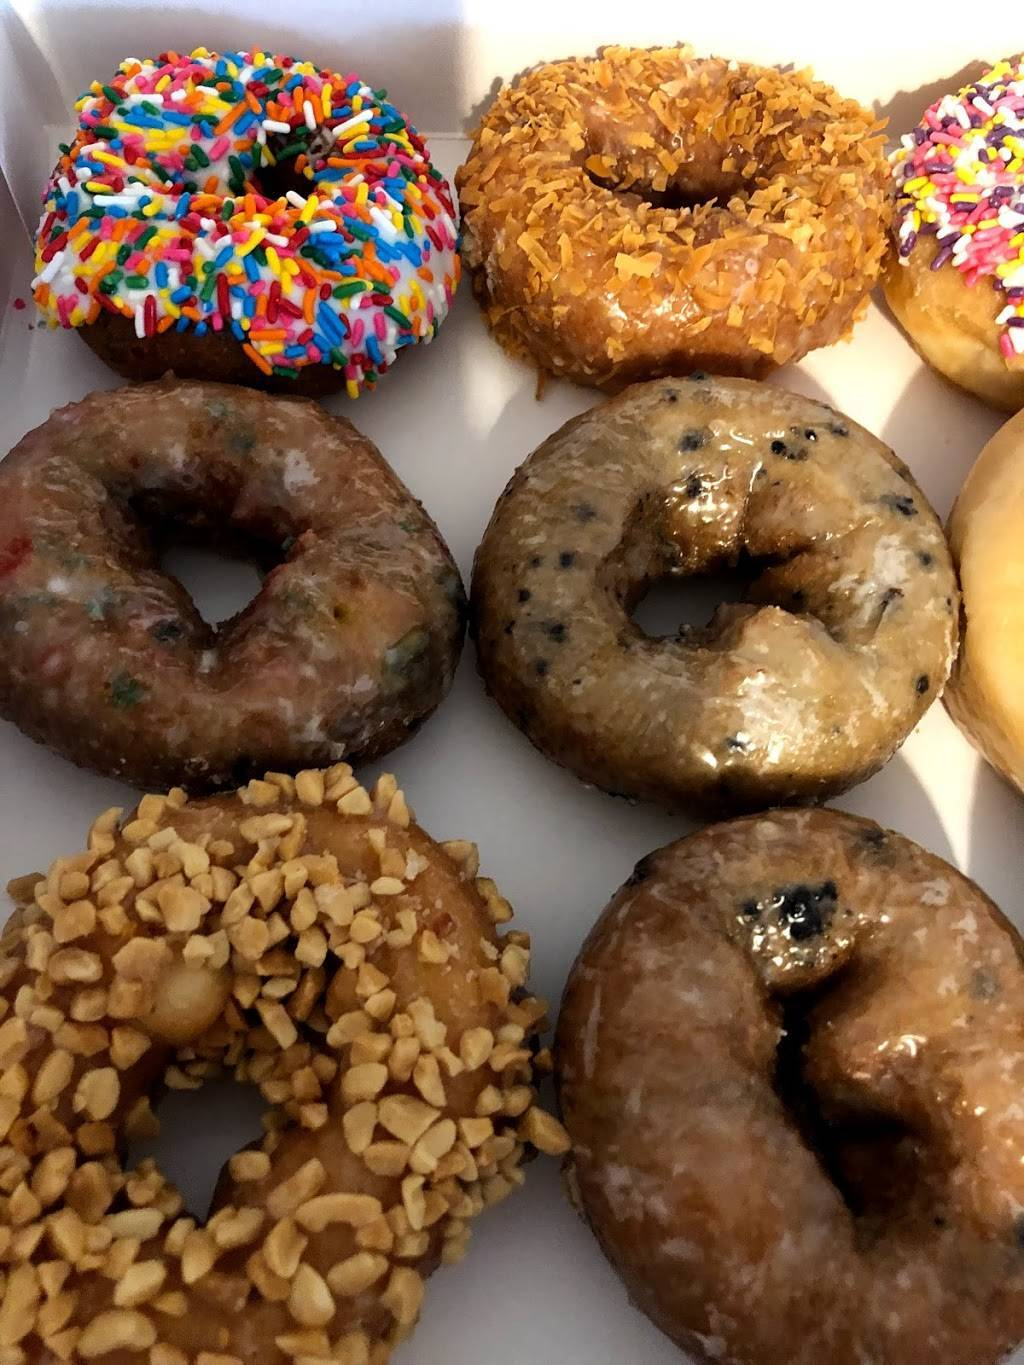 Daylight Donuts & Cafe   bakery   5228 Cemetery Rd, Hilliard, OH 43026, USA   6147427888 OR +1 614-742-7888